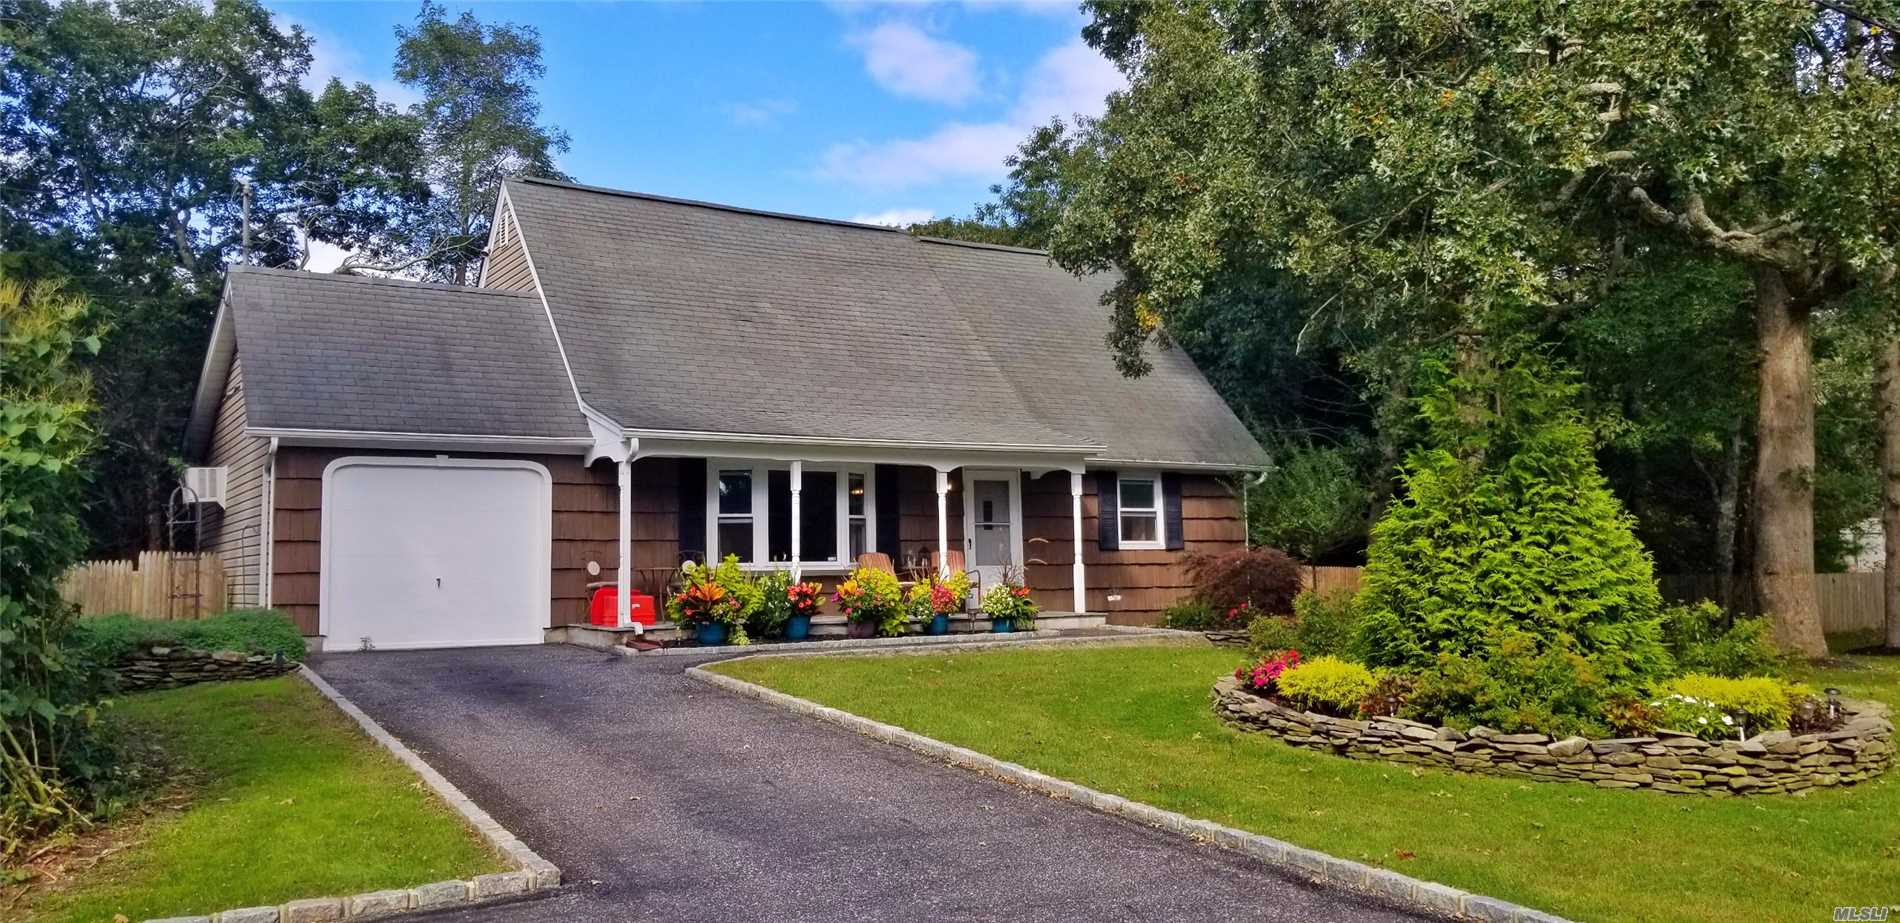 Photo of home for sale at 3 Summit Blvd, Westhampton NY